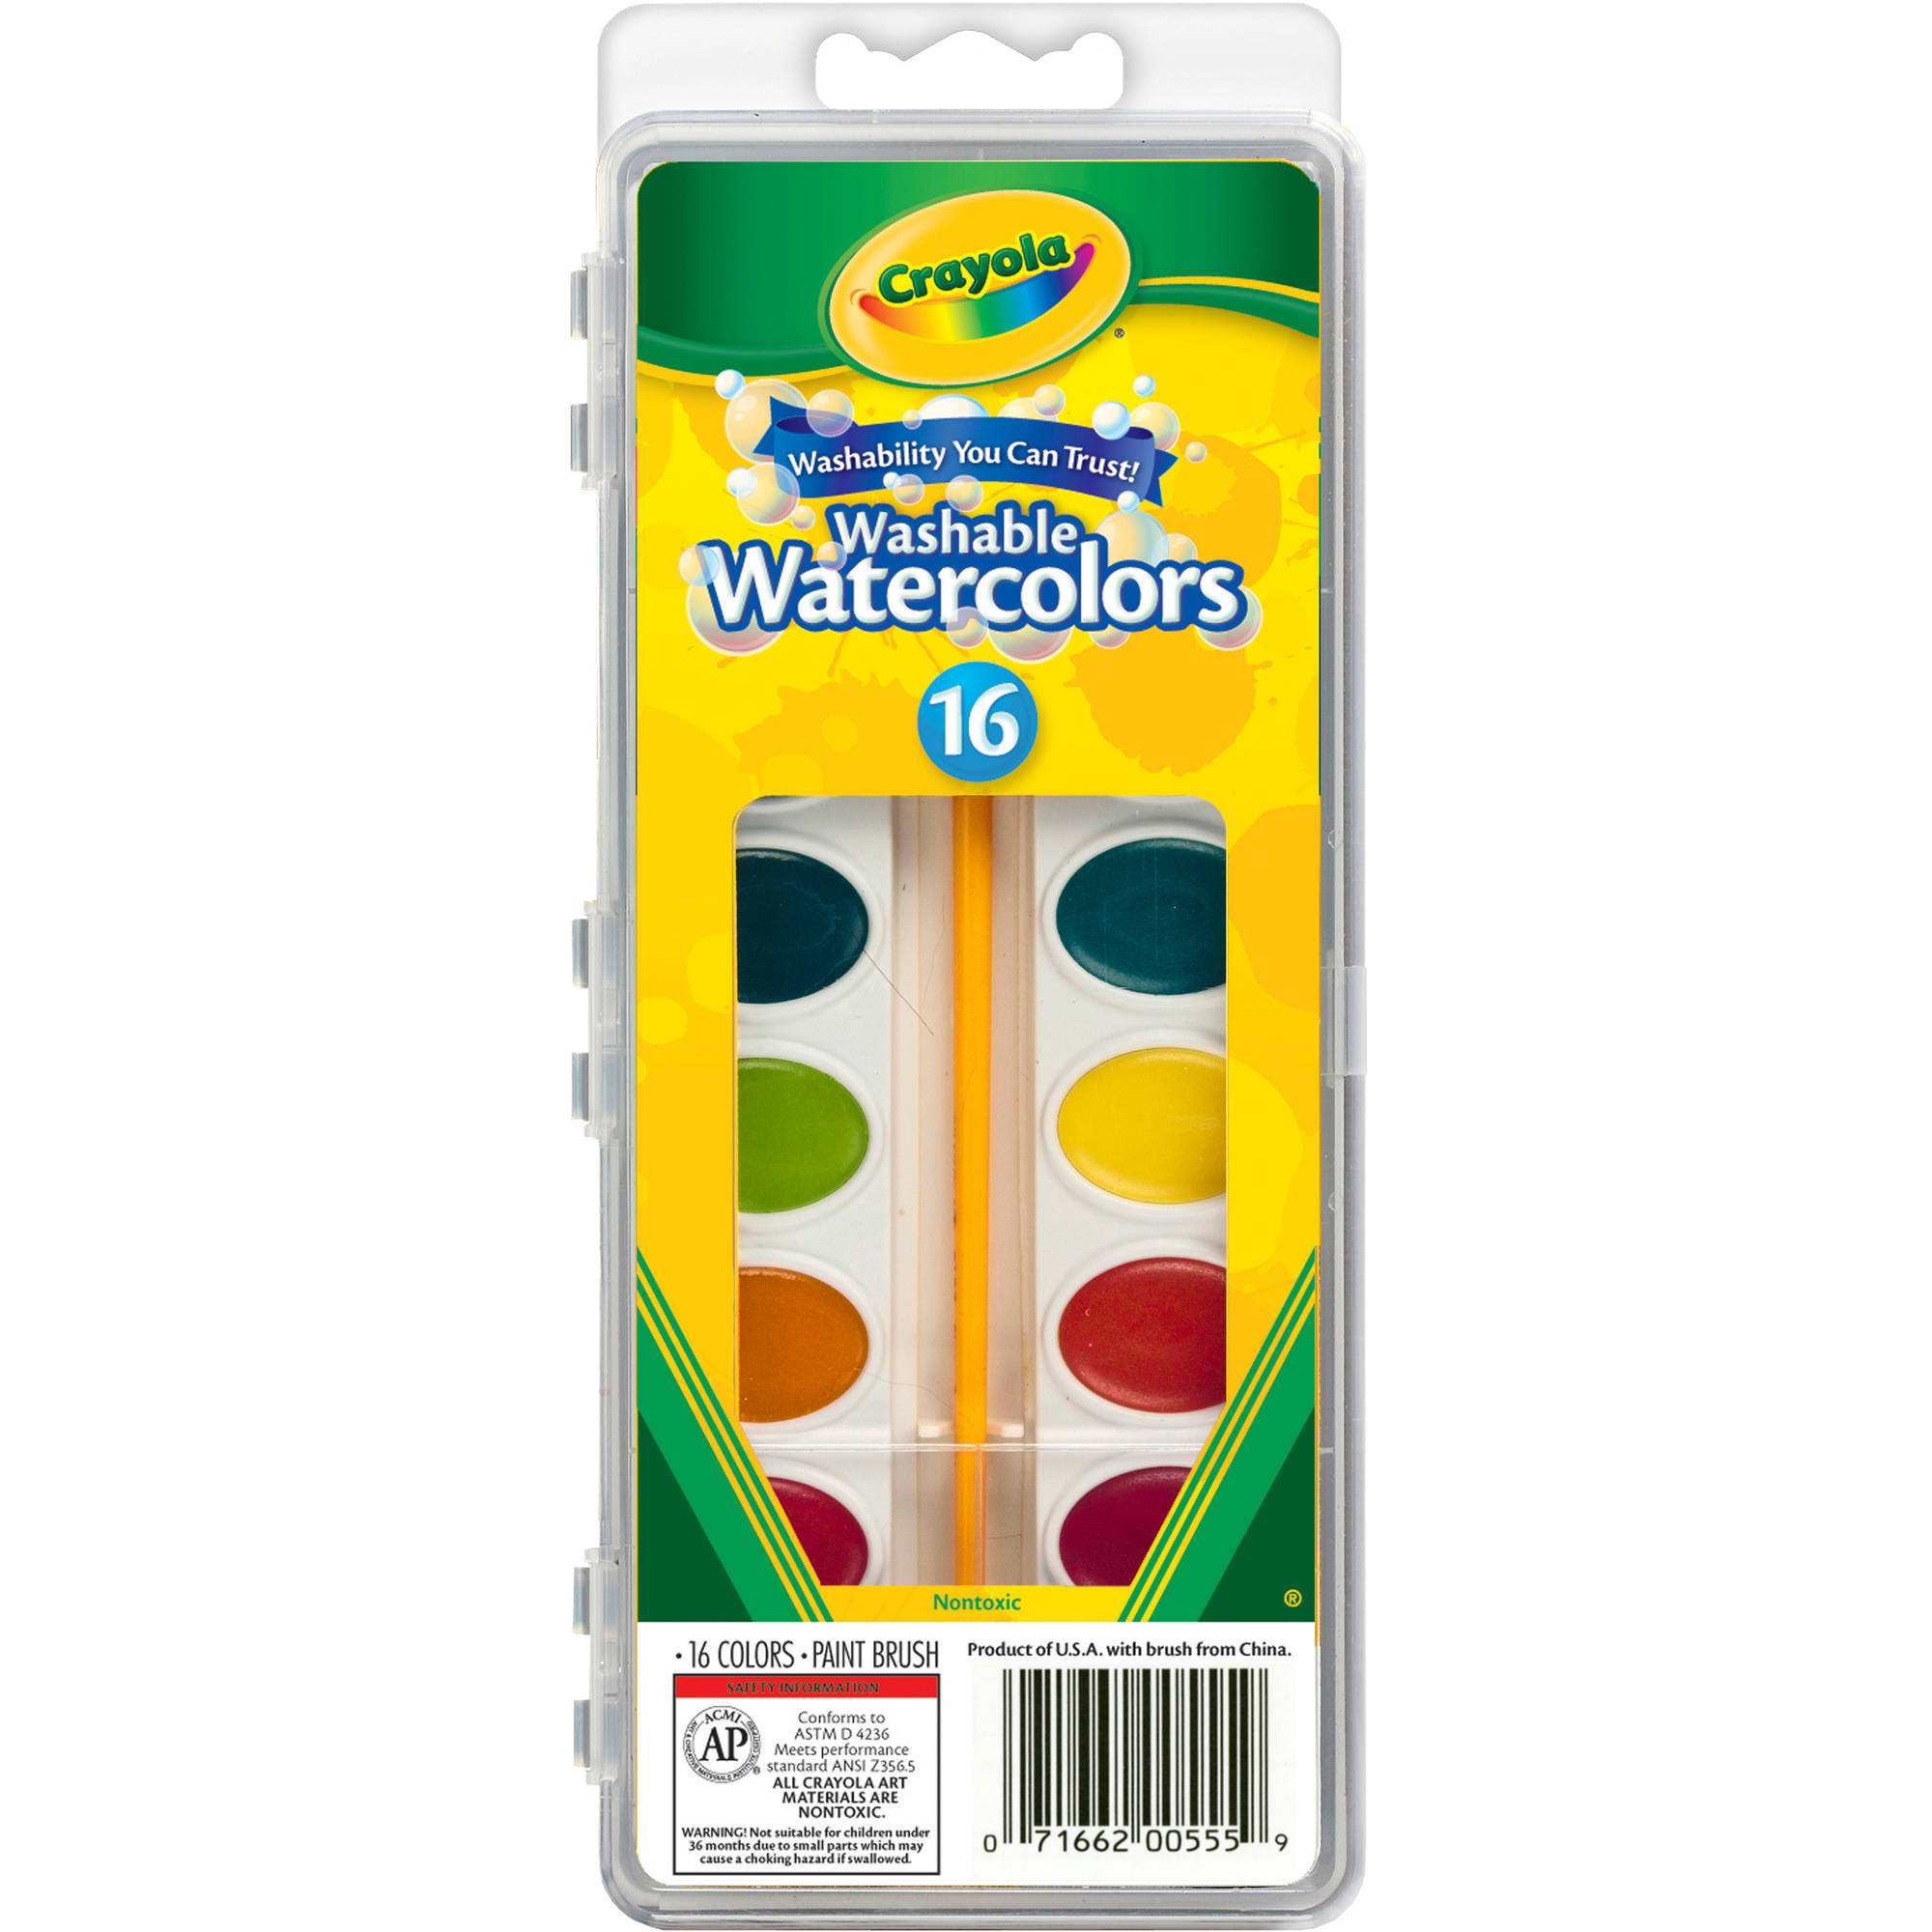 Crayola Washable Watercolors, 16-Pack